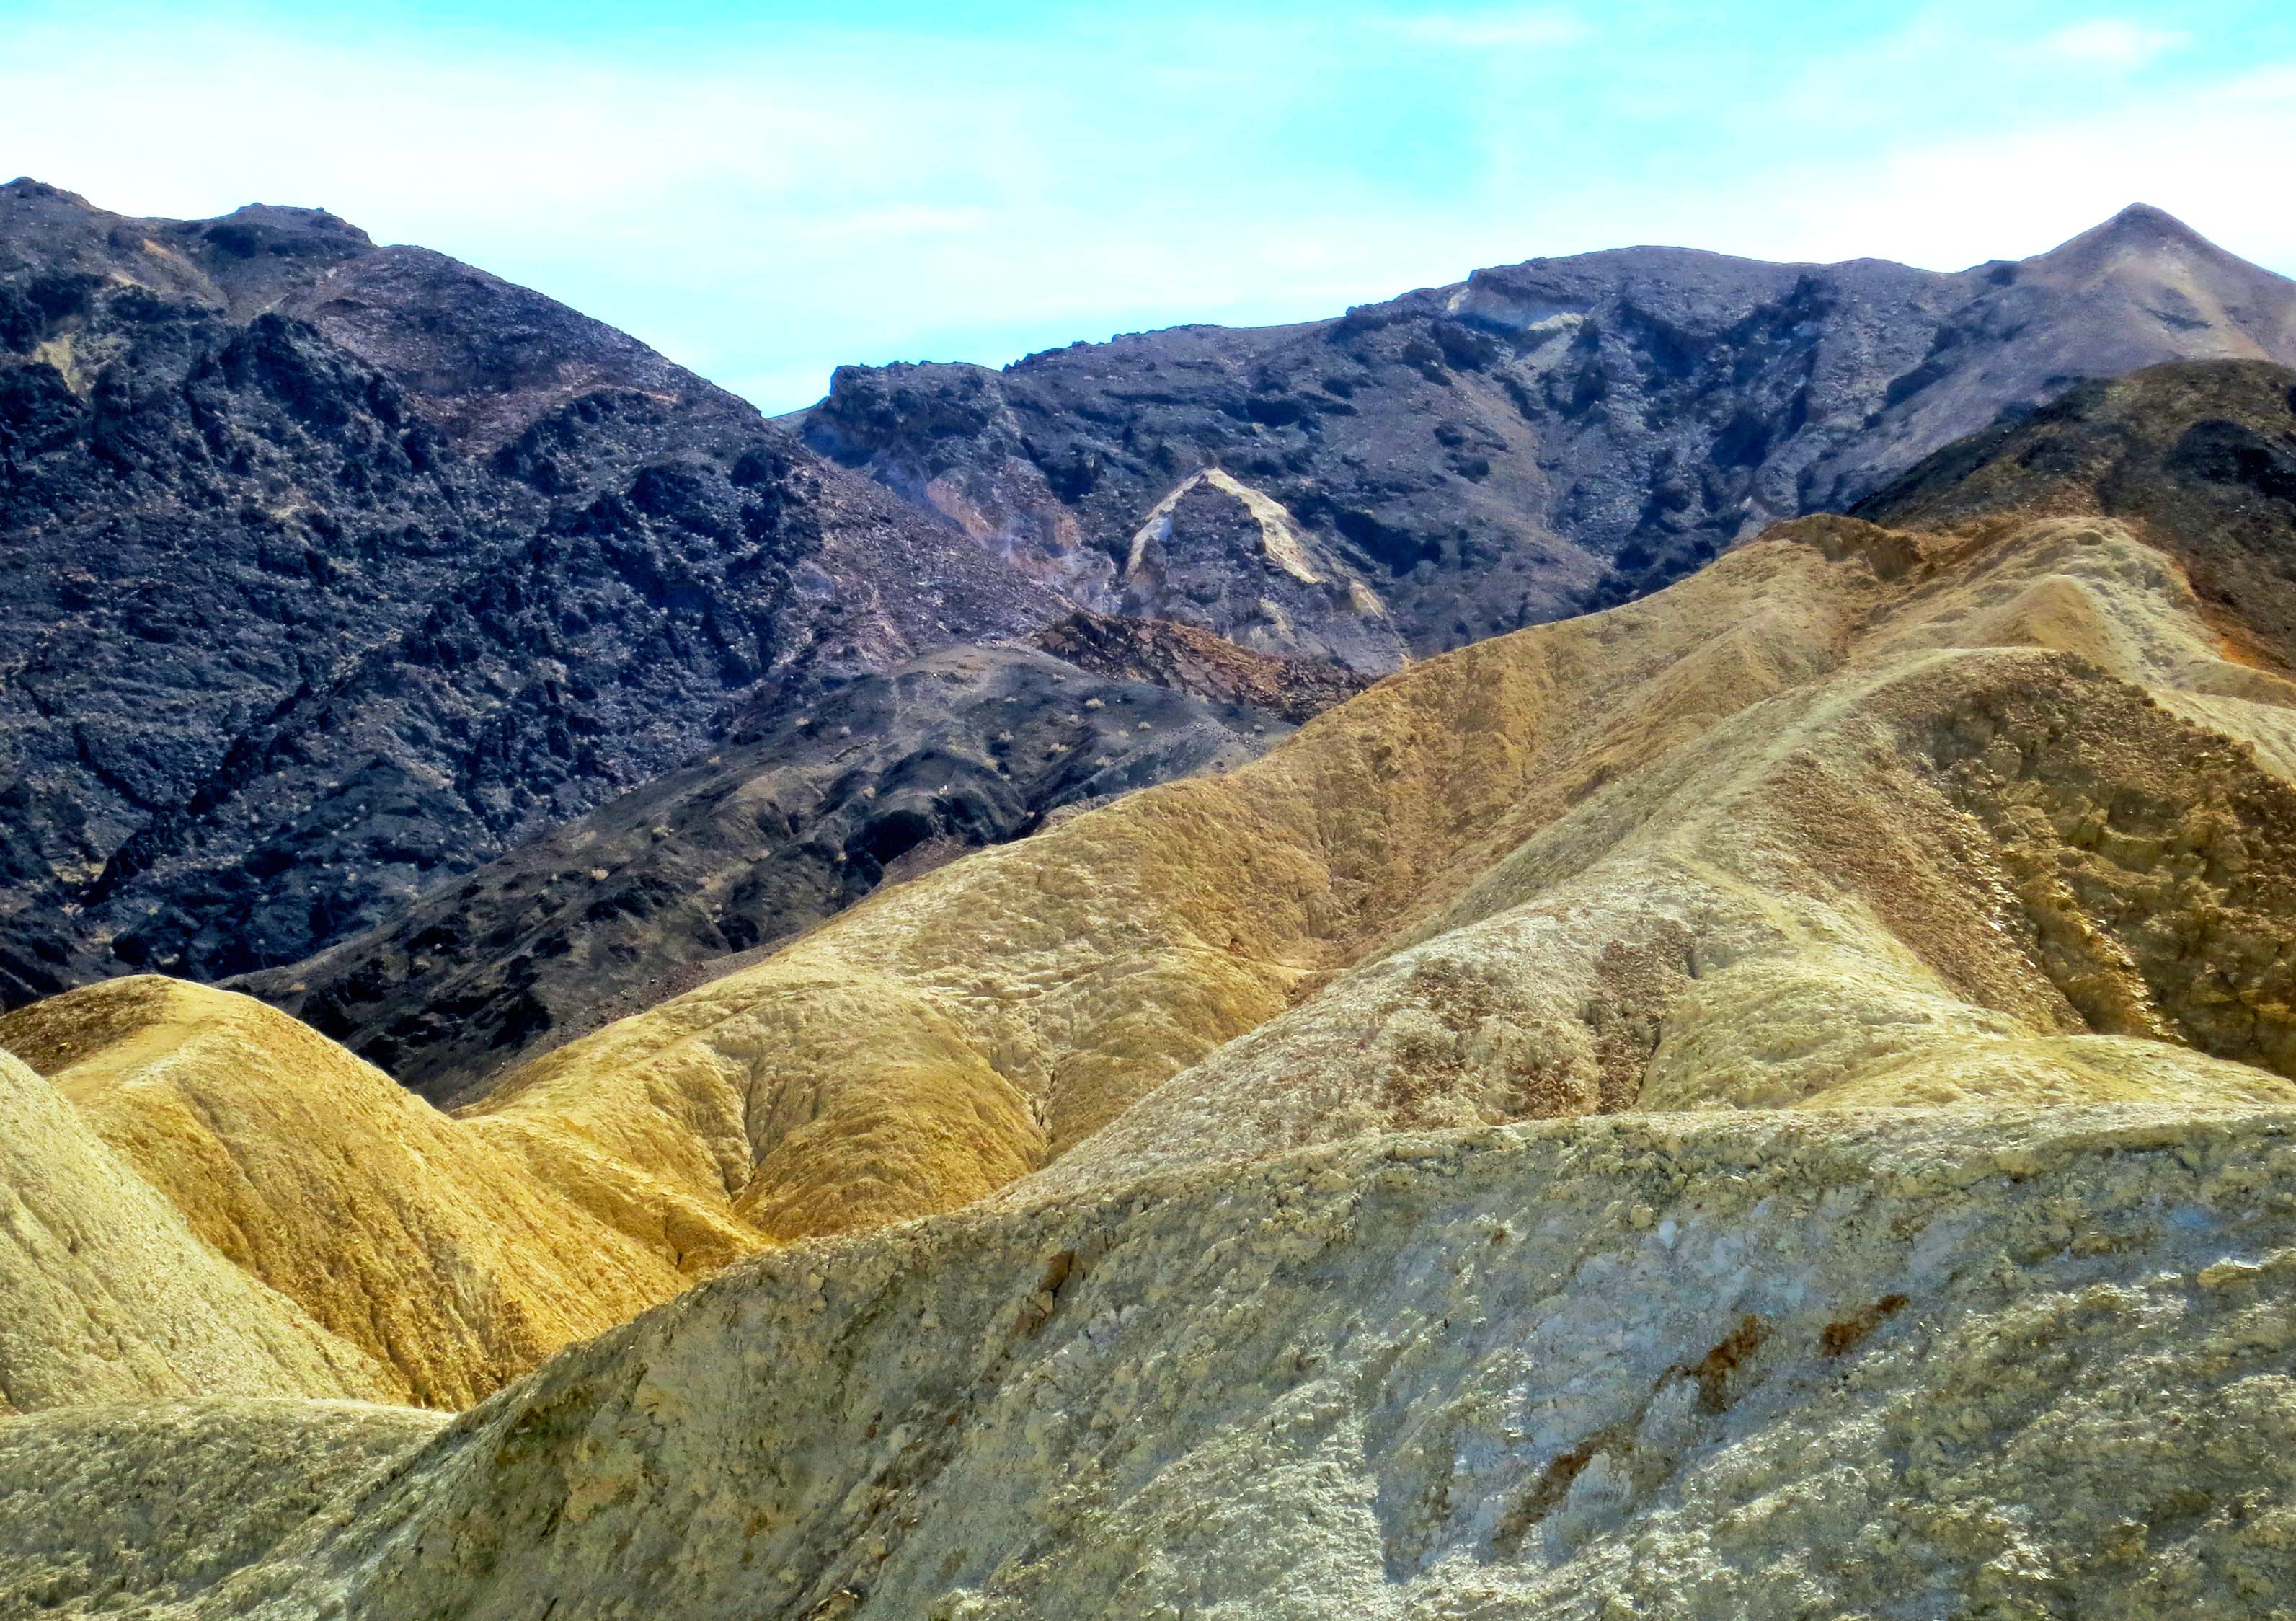 A final view of the riotous colors found in Twenty Mule Team Canyon.